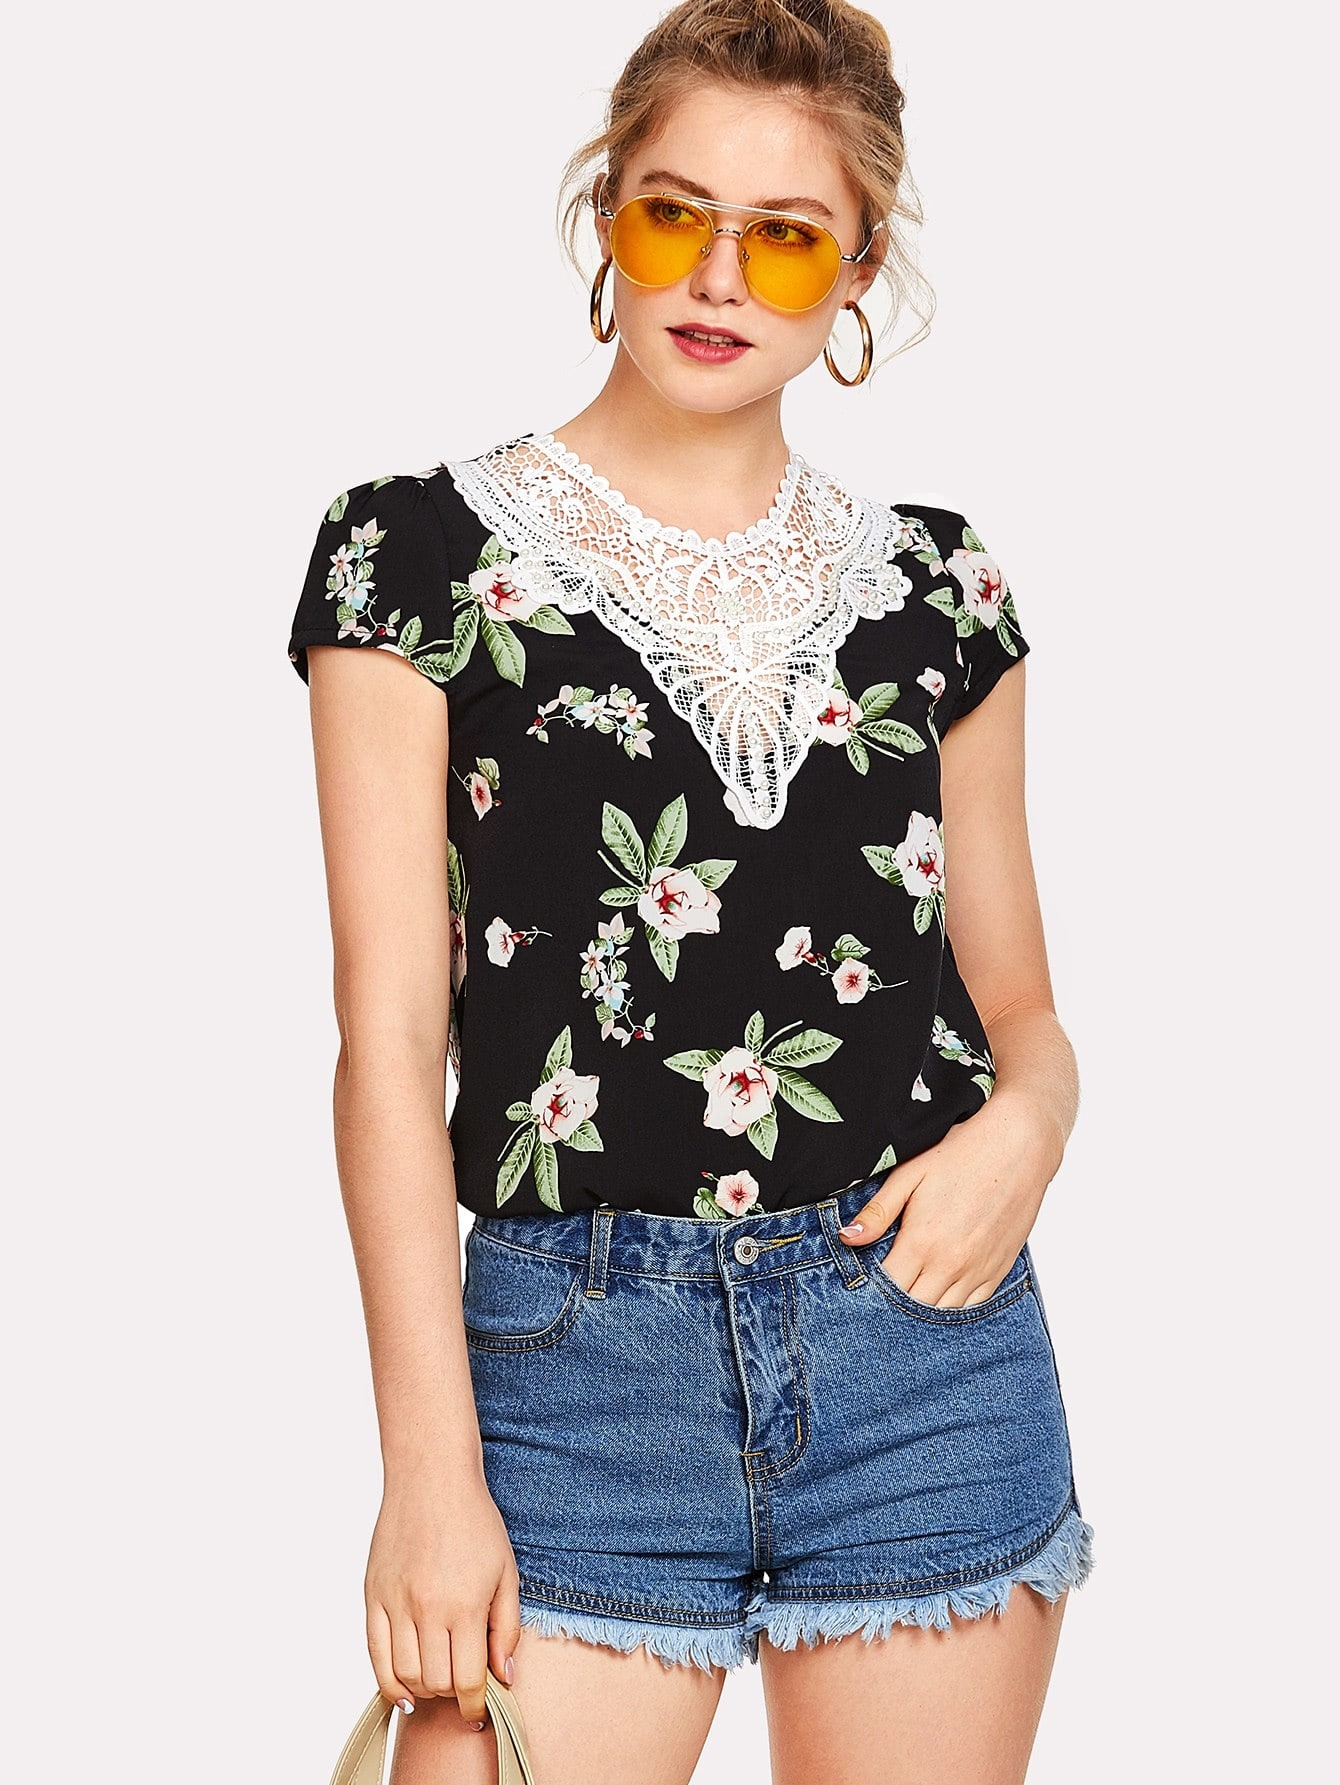 Lace Insert Cap Sleeve Floral Top болеро max mara болеро